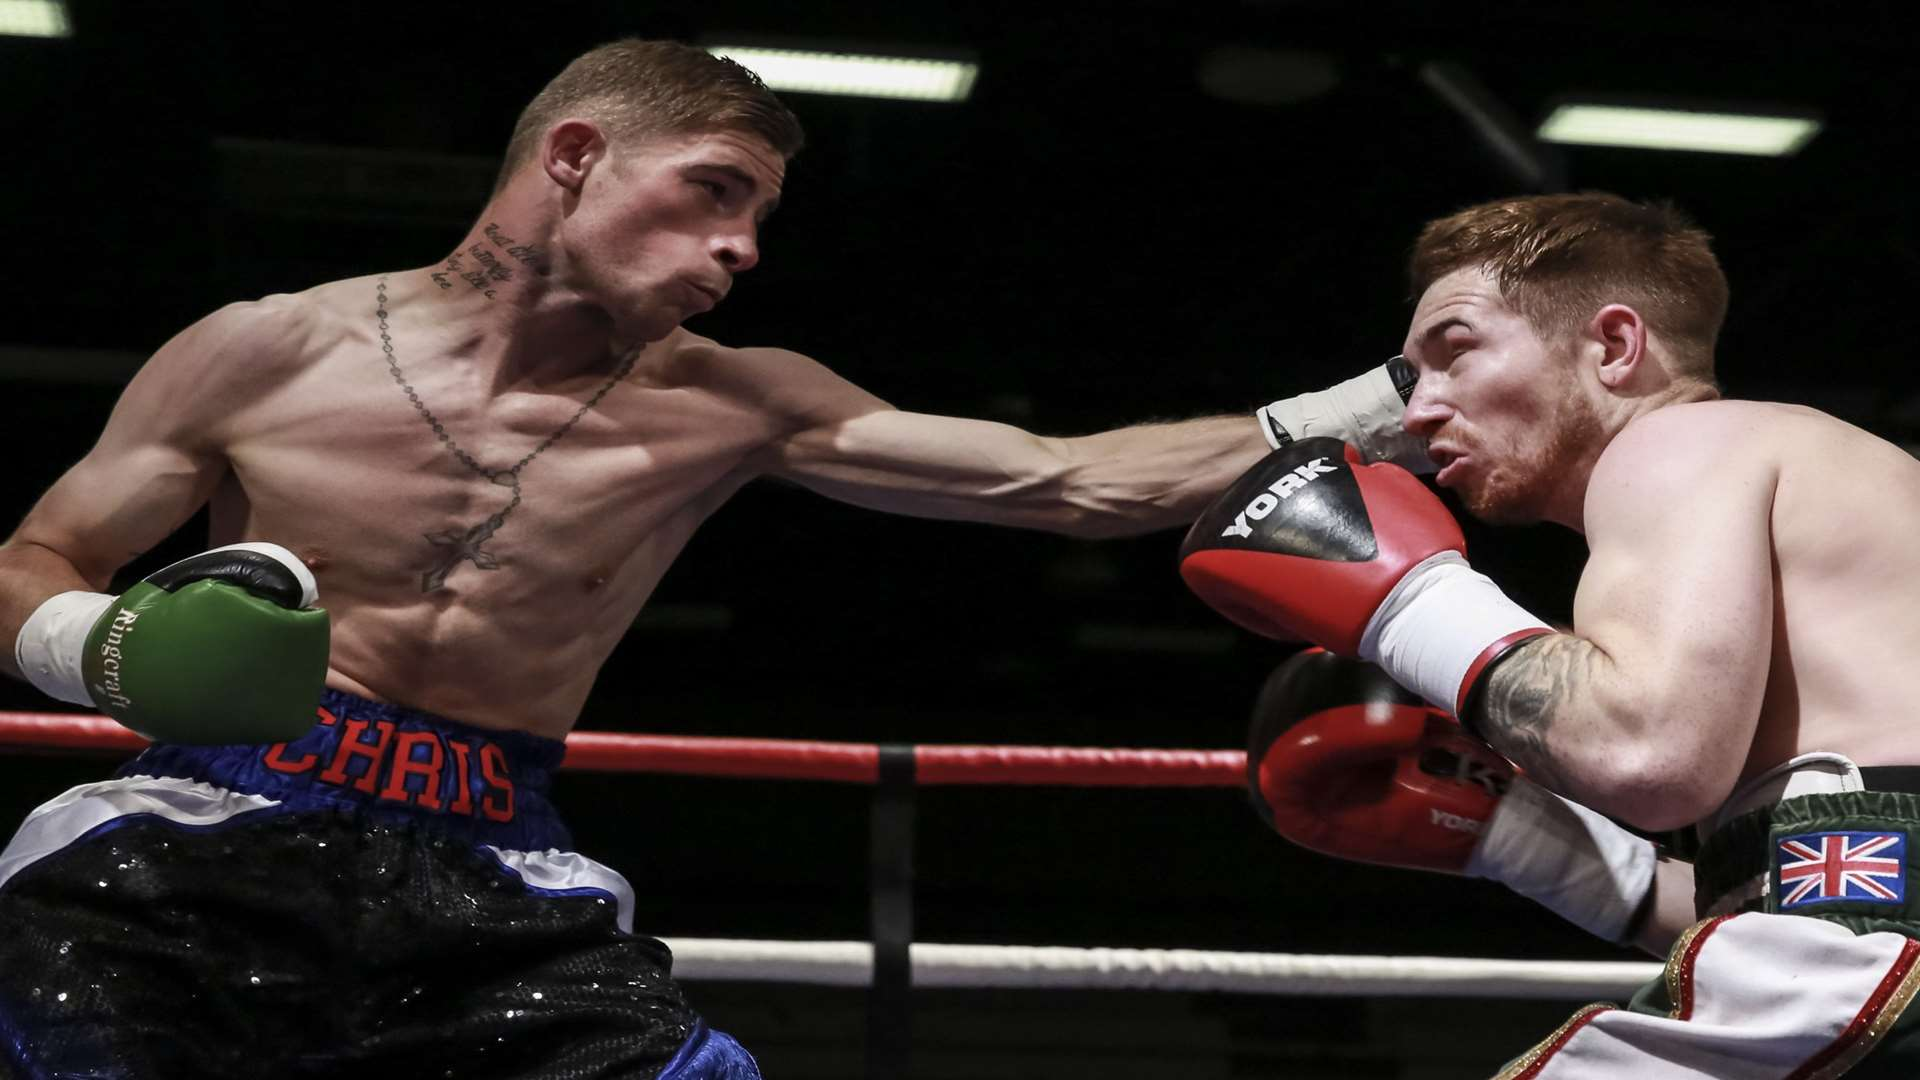 Maidstone boxer Chris Matthews Picture: Countrywide Photographic